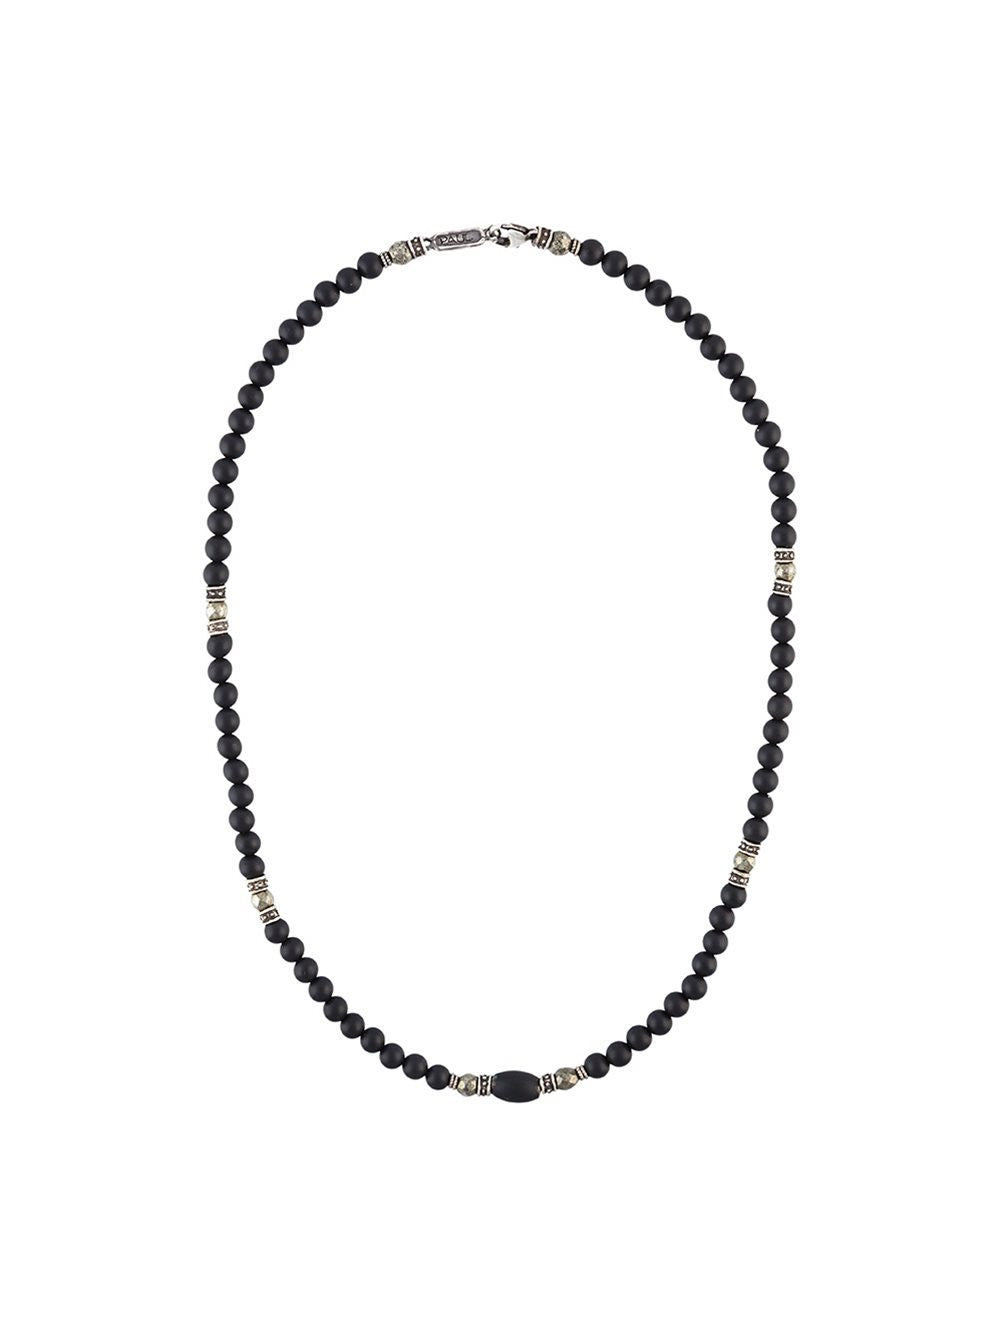 Beaded Onyx Necklace | N-479-12-SS/ONX/PYR